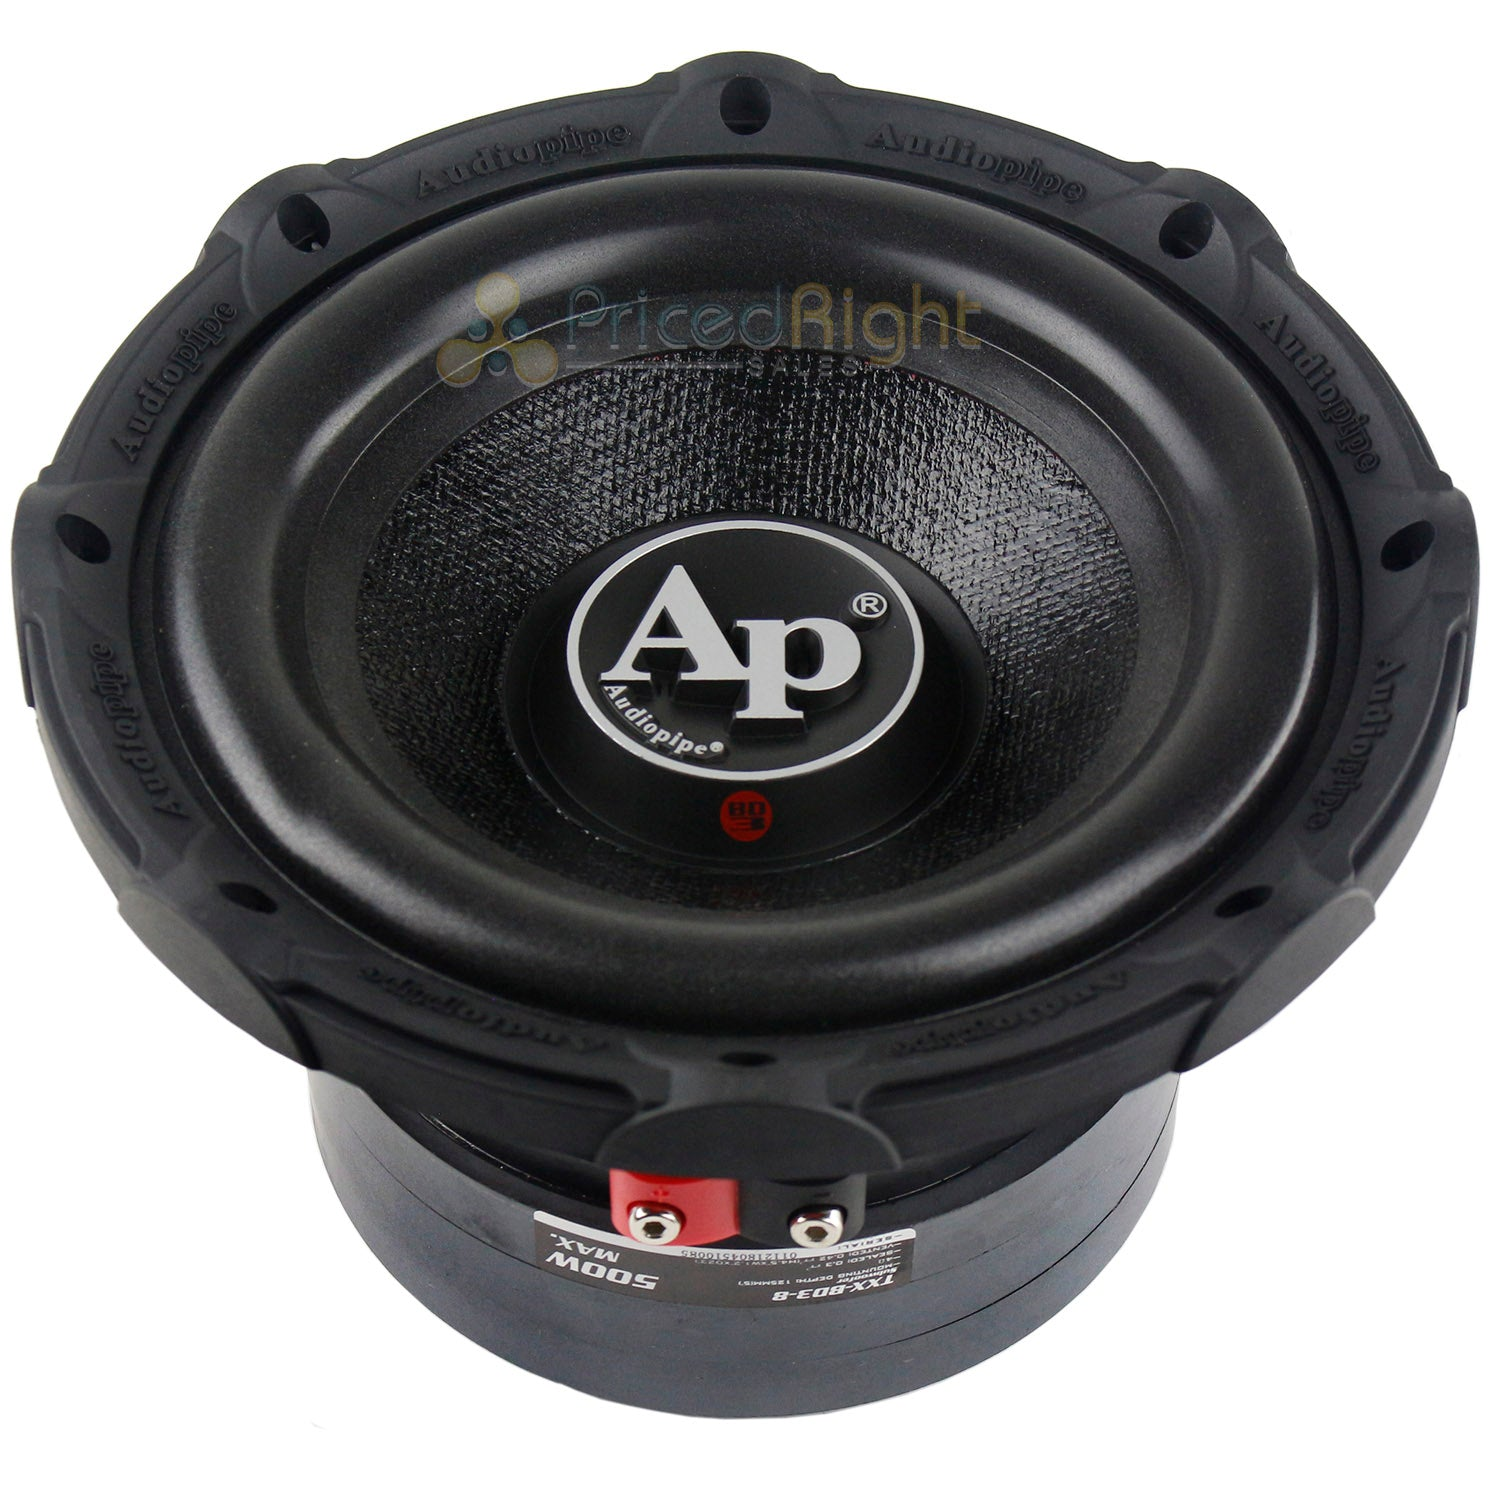 "Audiopipe 8"" Subwoofer 500 Watts Max Single 4 Ohm Triple Stack Series TXX-BDC3-8"